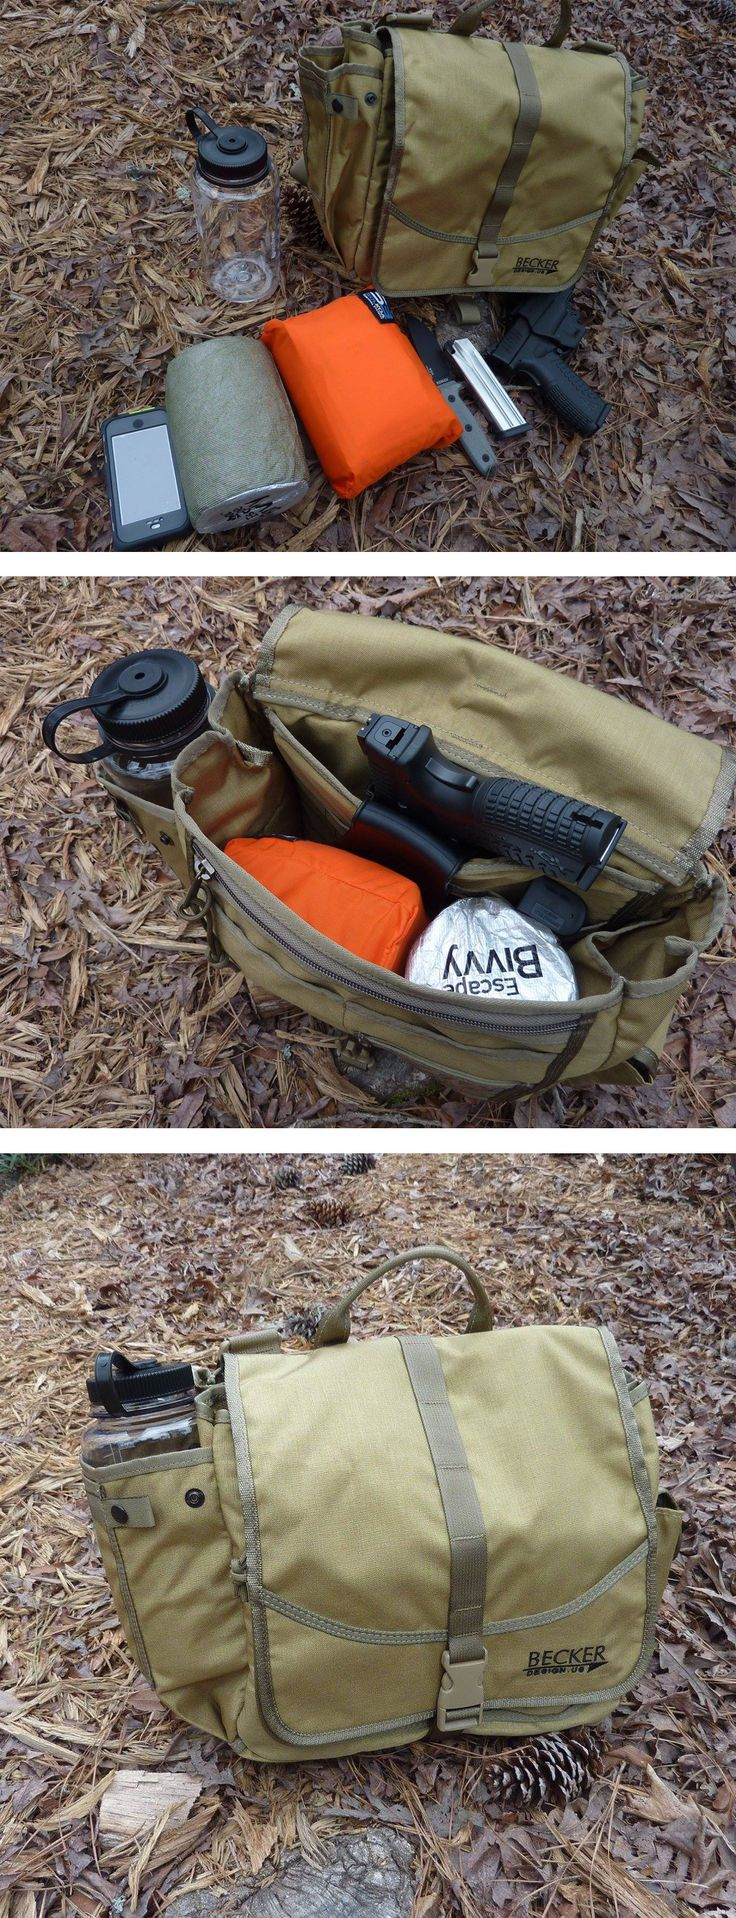 Becker Field Bag loaded for a day in the woods with SOL Escape Bivvy, SOLKOA Hunter Survival Kit, ESEE Model 3, phone and water bottle, plus heater.